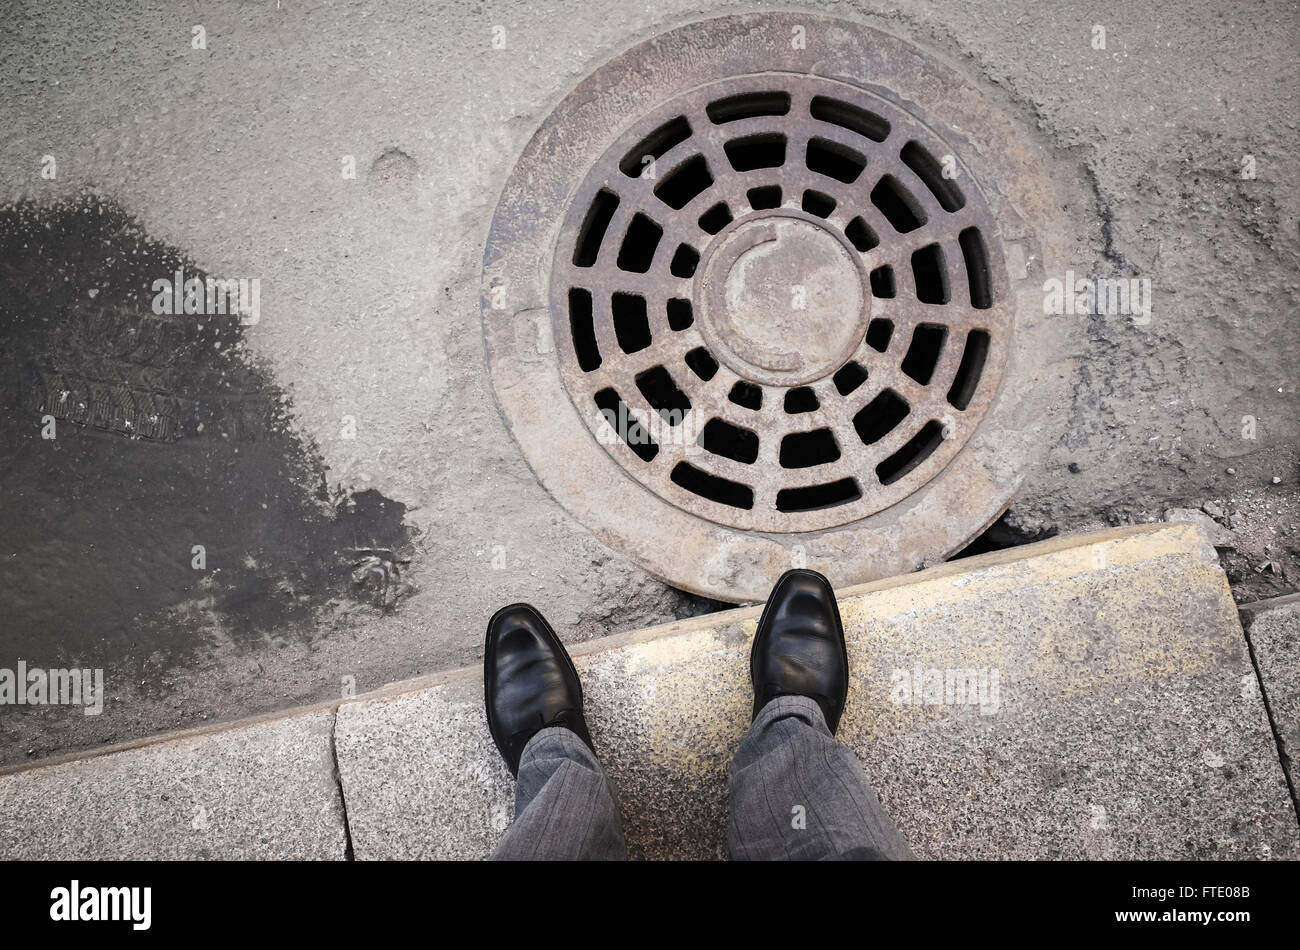 Urbanite man in black new shining leather shoes standing on the roadside near rusty sewer manhole - Stock Image